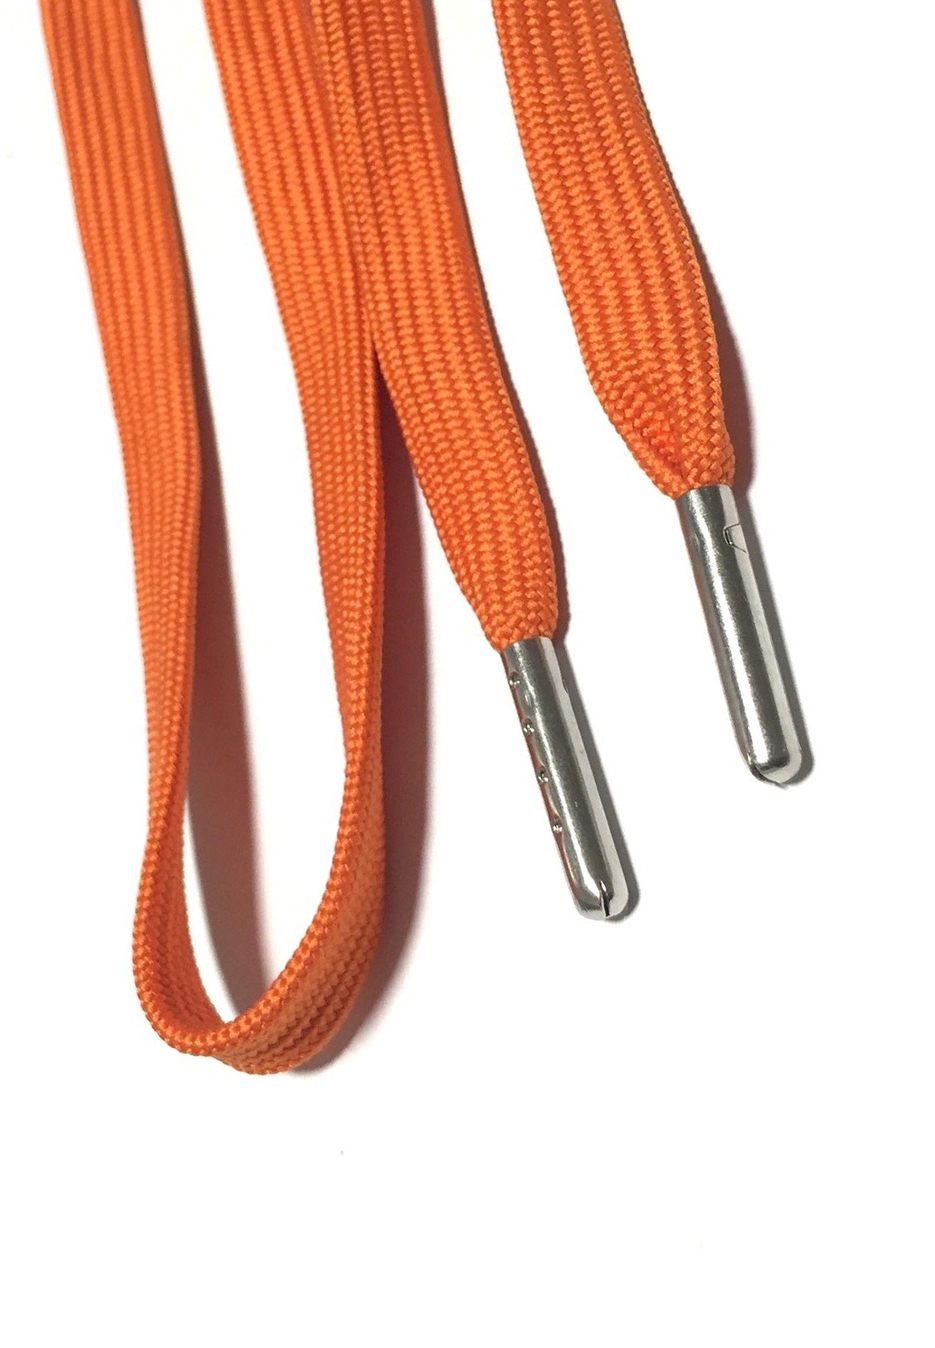 FLAT SHOELACES - ORANGE / SILVER TIP 2